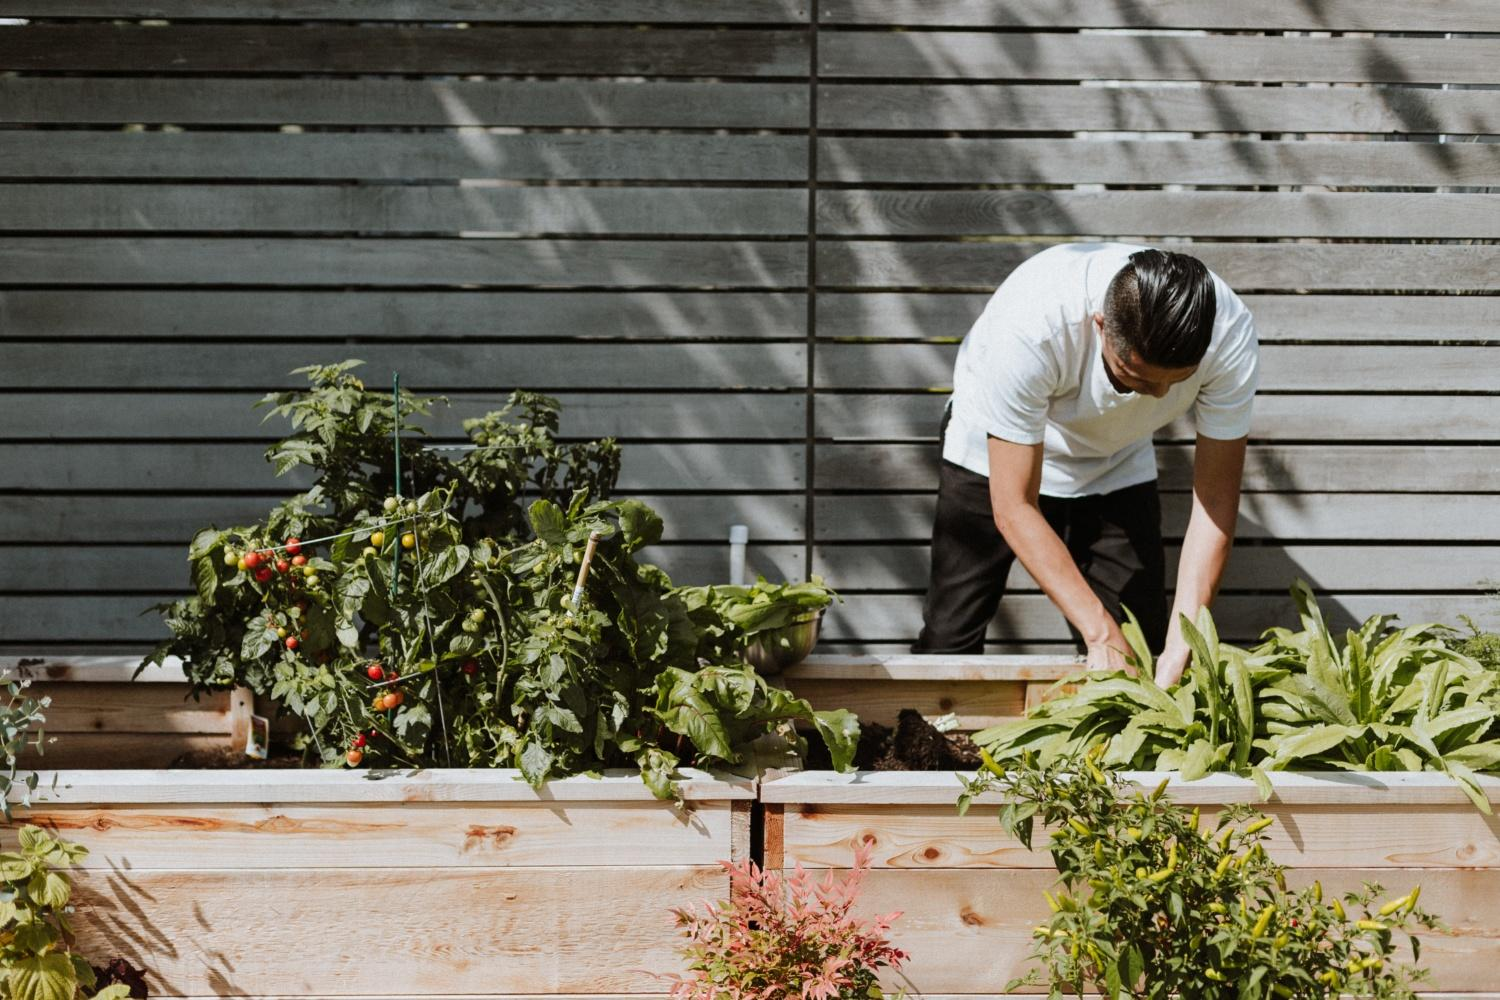 A person bends over a raised bed in front of a tall horizontal wooden fence, tending to plants. Ripe cherry tomatoes can be seen hanging from the plant on the left.